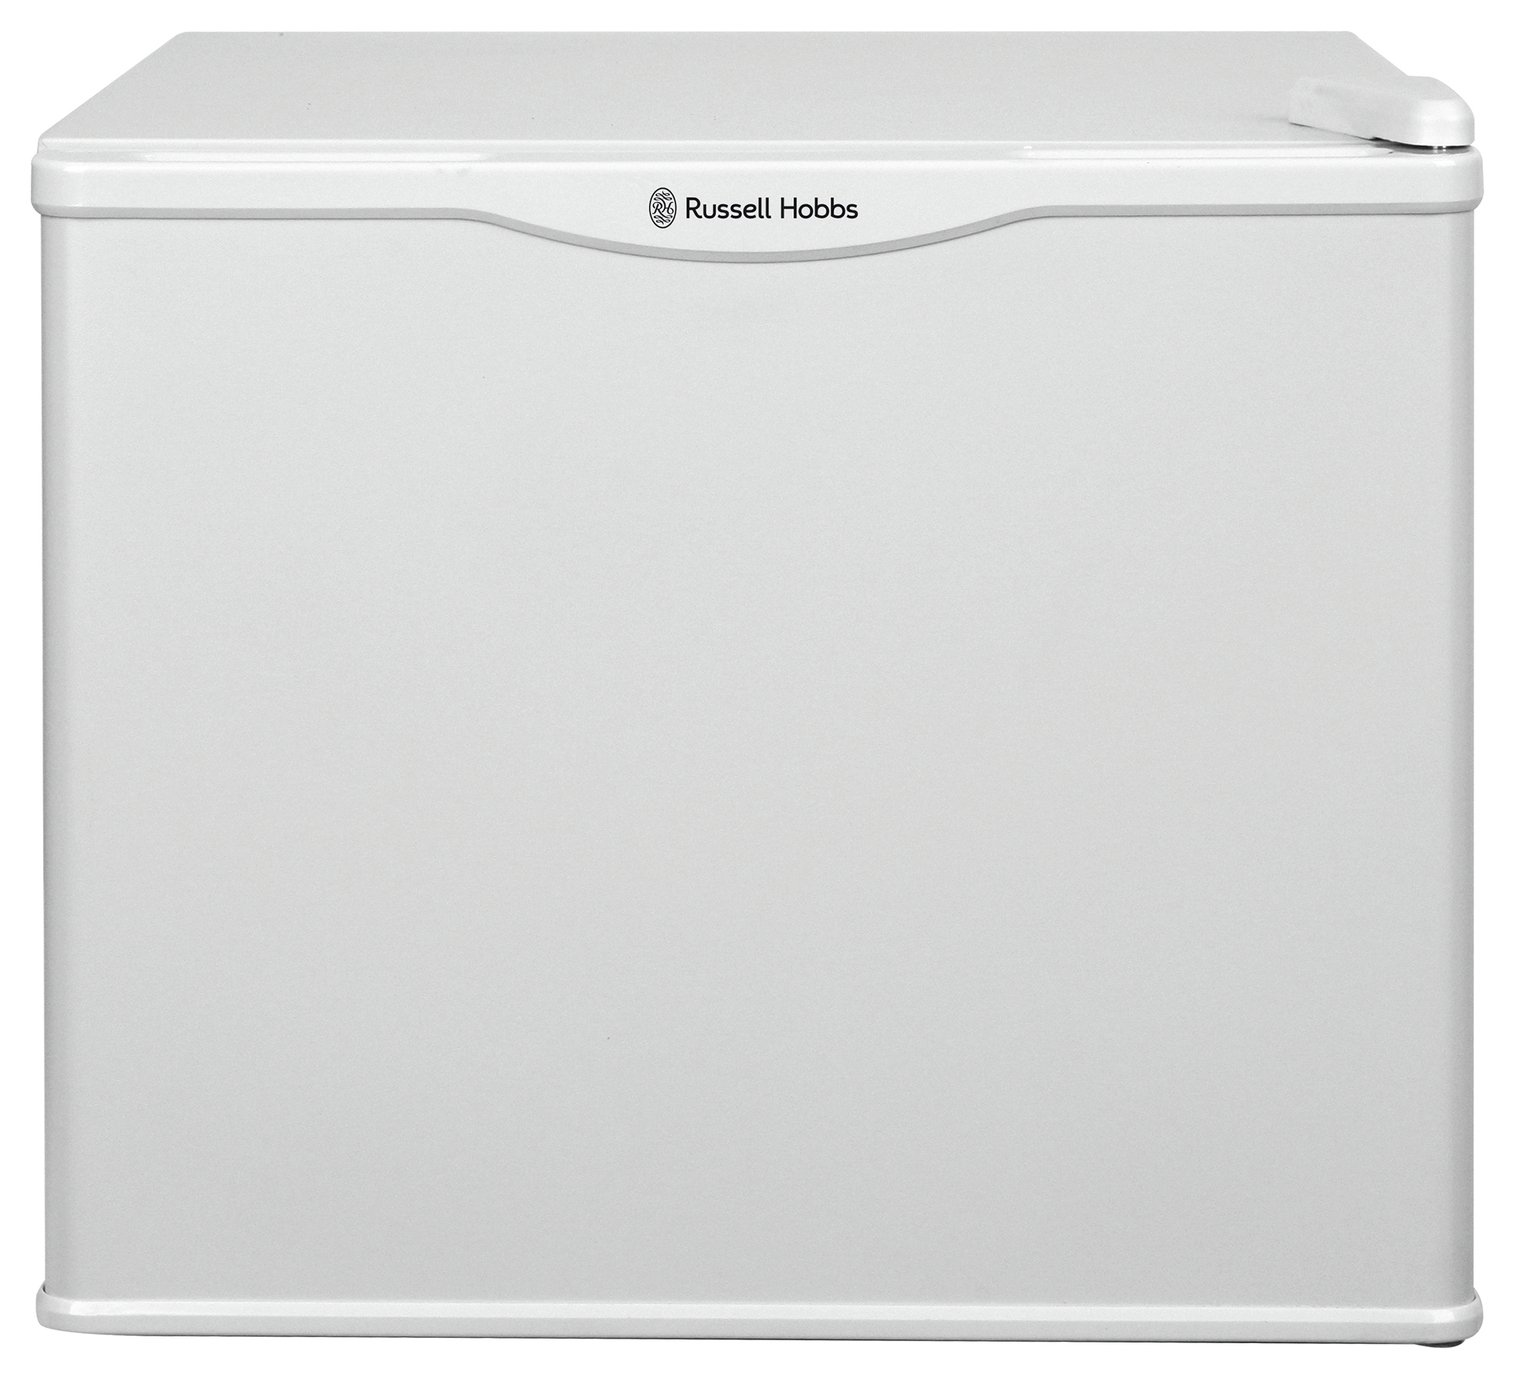 Russell Hobbs RHCLRF17 Tabletop Cooler - White